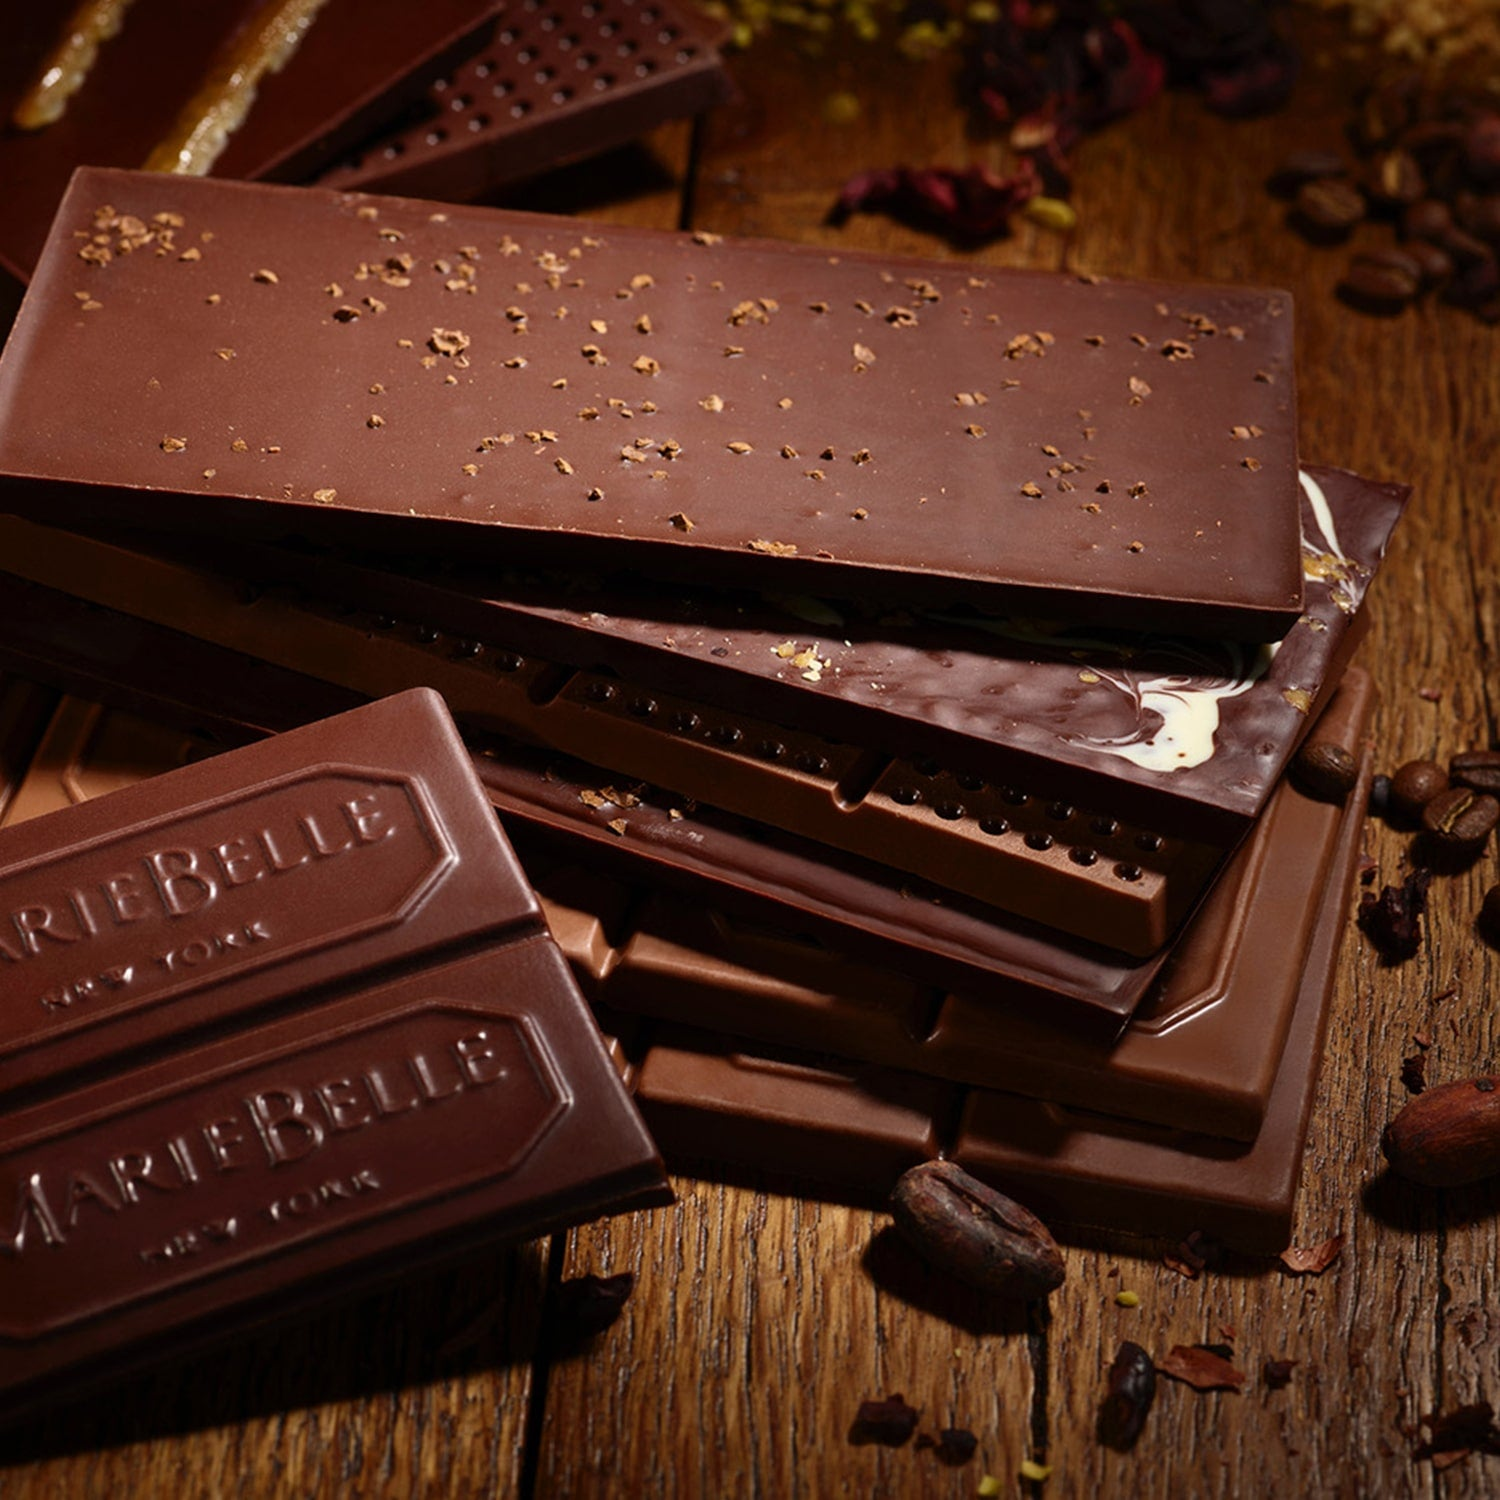 Collection image featuring chocolate bars.